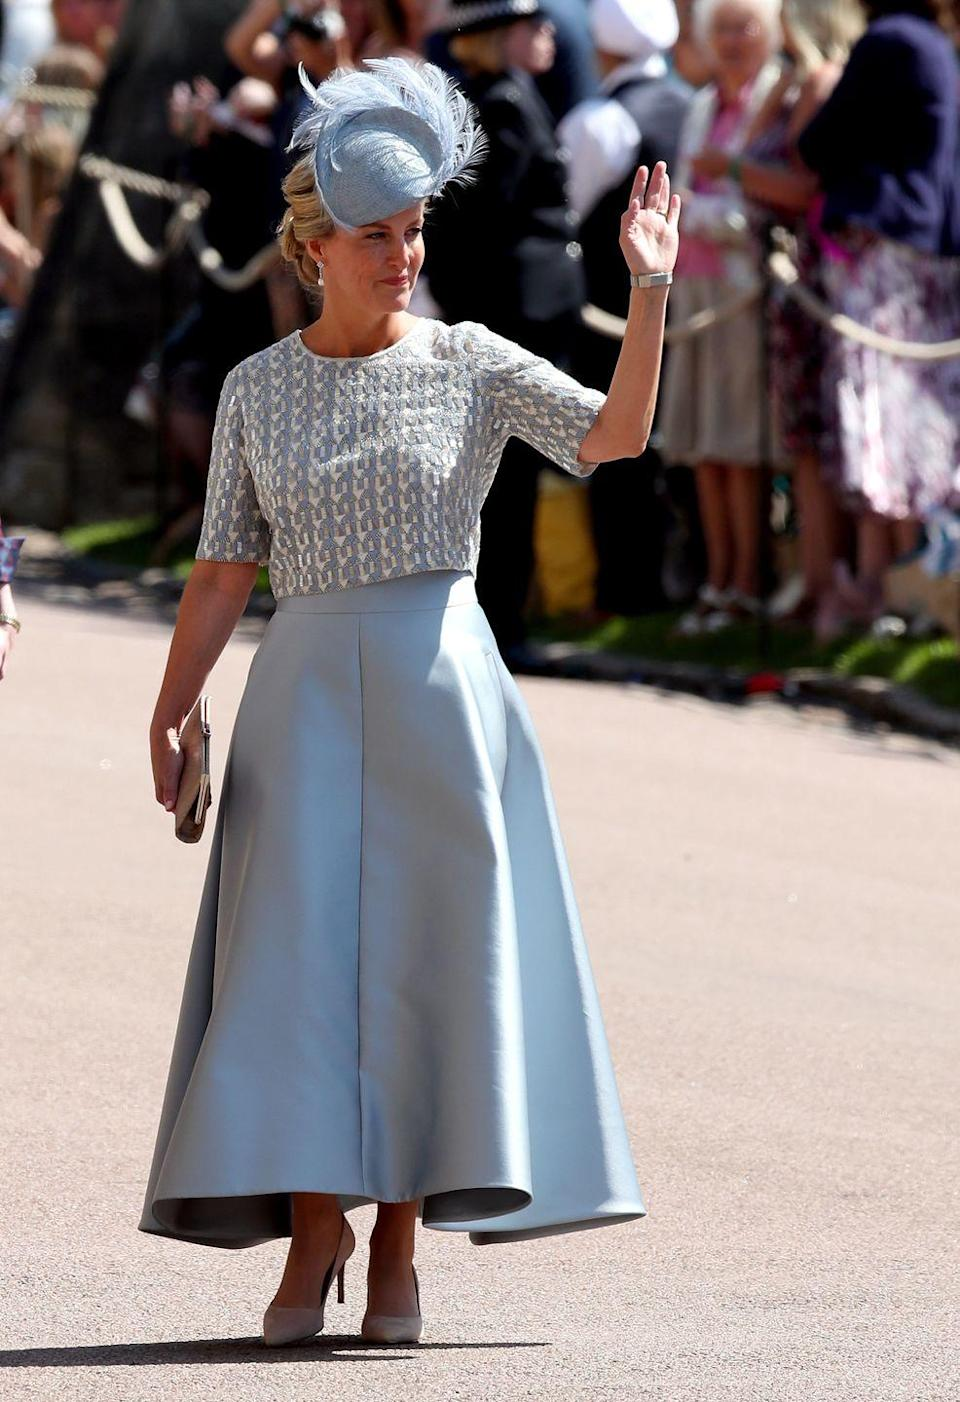 """<p>Sophie, the Countess of Wessex, in a soft blue ensemble designed by Suzannah at <a href=""""https://www.townandcountrymag.com/the-scene/weddings/a9936314/prince-harry-meghan-markle-wedding/"""" rel=""""nofollow noopener"""" target=""""_blank"""" data-ylk=""""slk:her nephew Prince Harry's wedding to Meghan Markle."""" class=""""link rapid-noclick-resp"""">her nephew Prince Harry's wedding to Meghan Markle.</a> She is also wore a hat by Jane Taylor.</p>"""